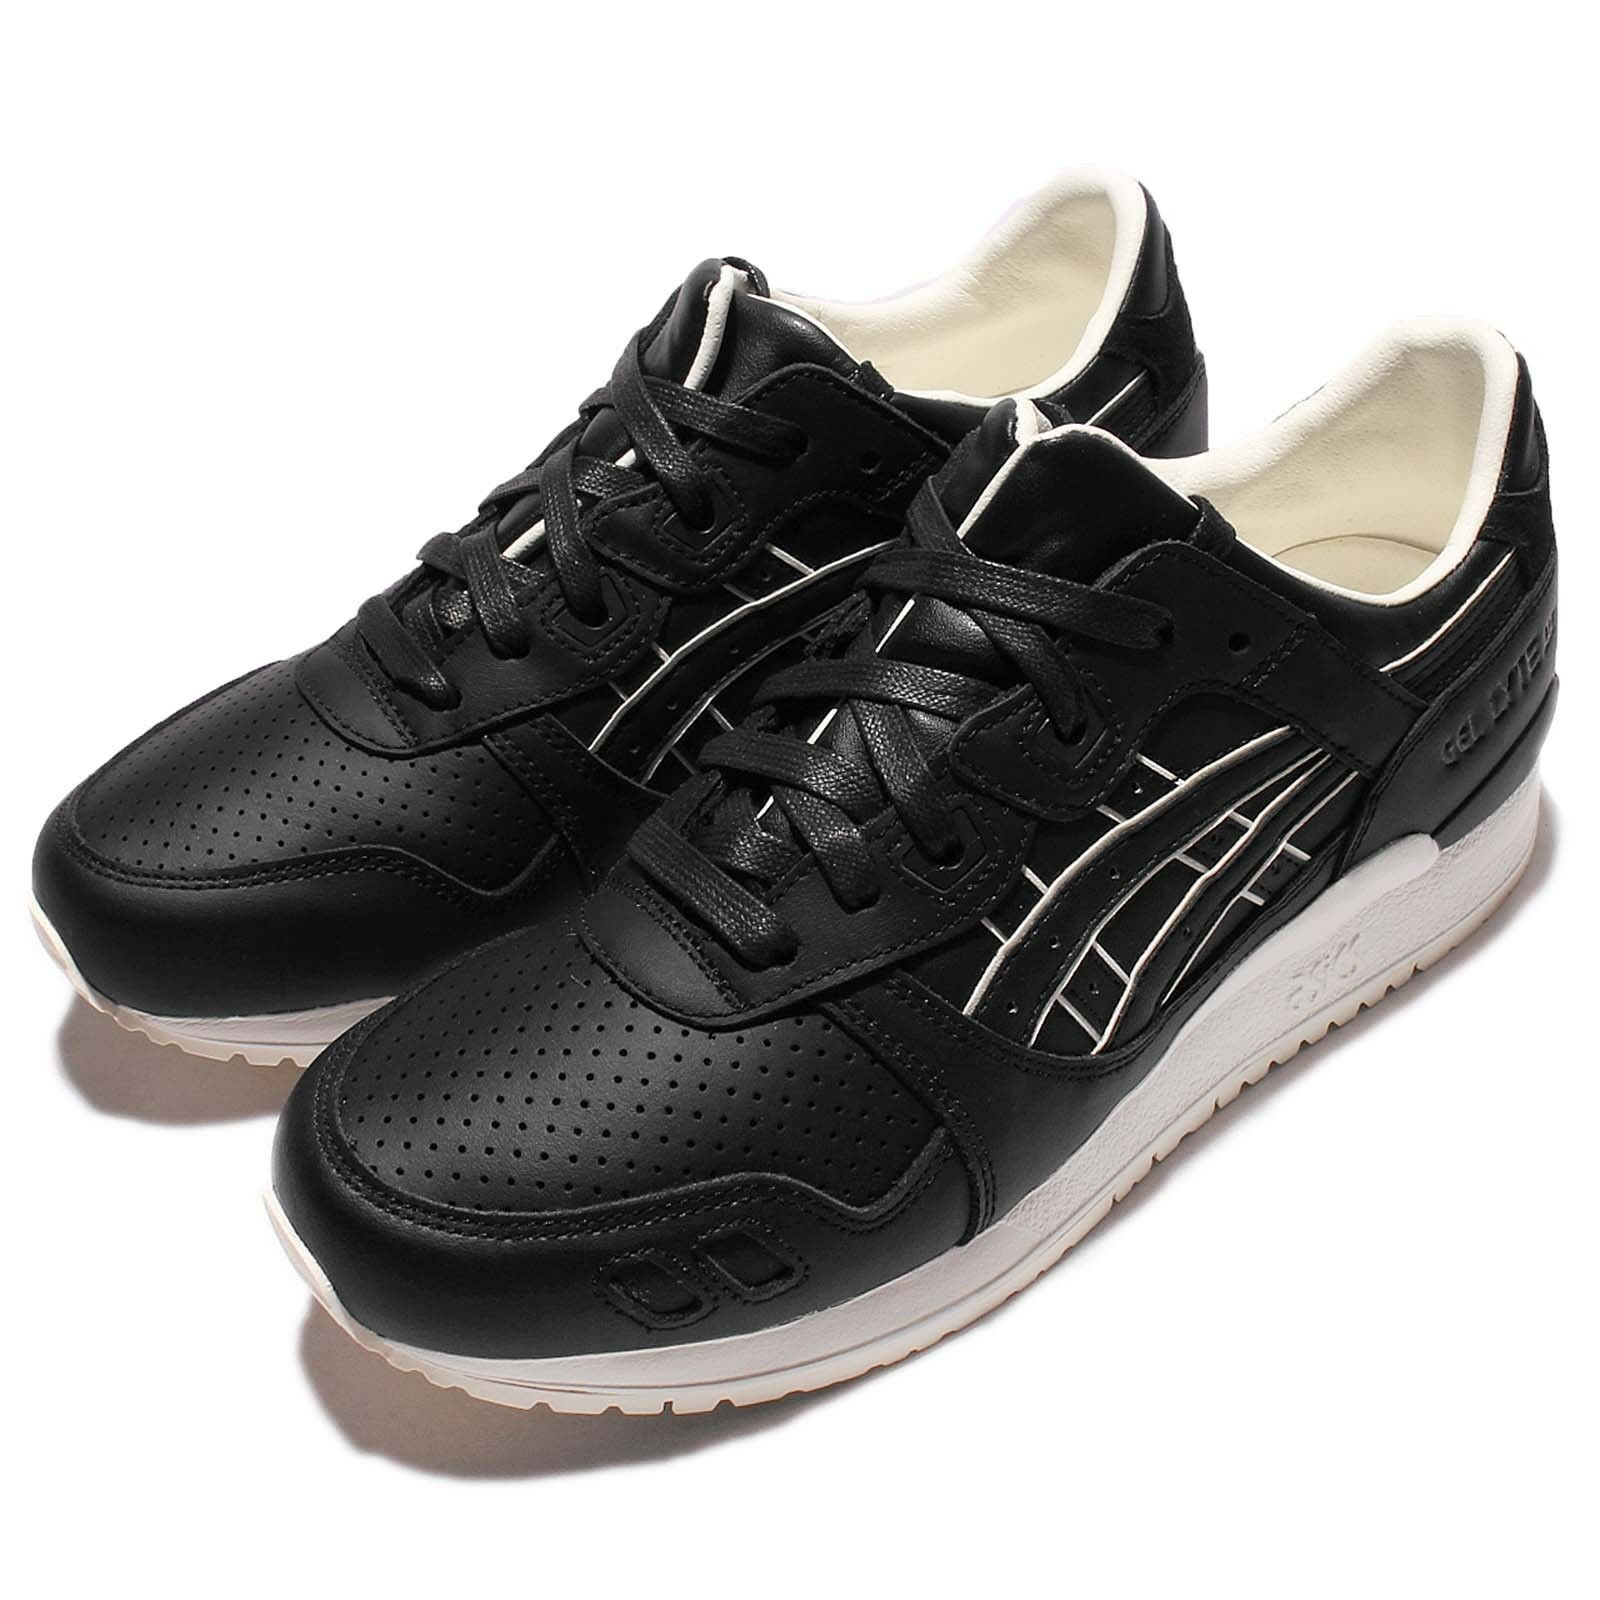 ASICS Tiger Gel-Lyte III 3 Black White Leather Mens Running Shoes H6S3L-9090